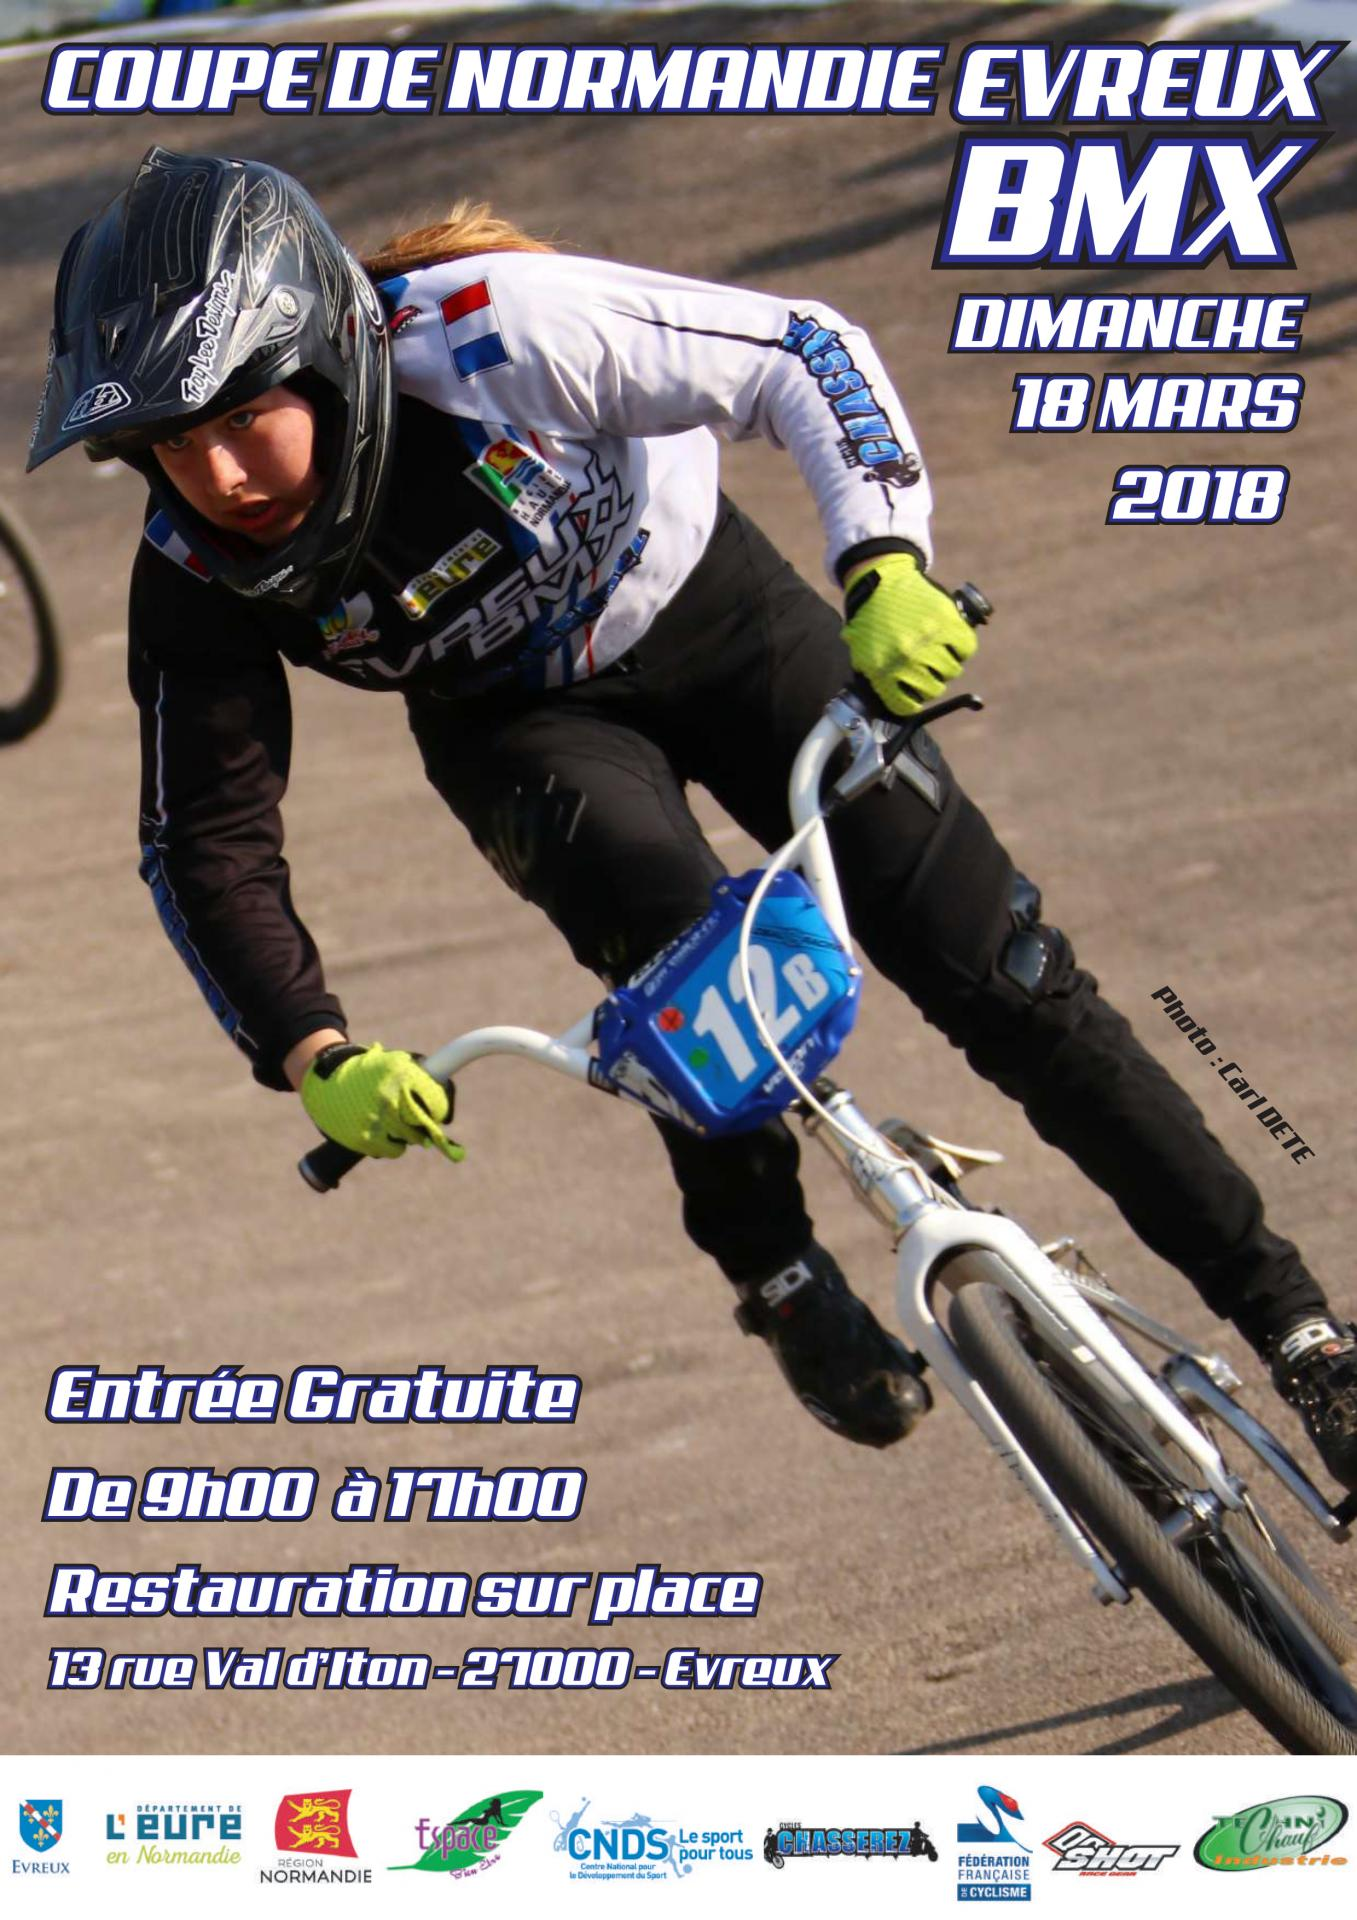 Invitation coupe de normandie evreux 2018 1